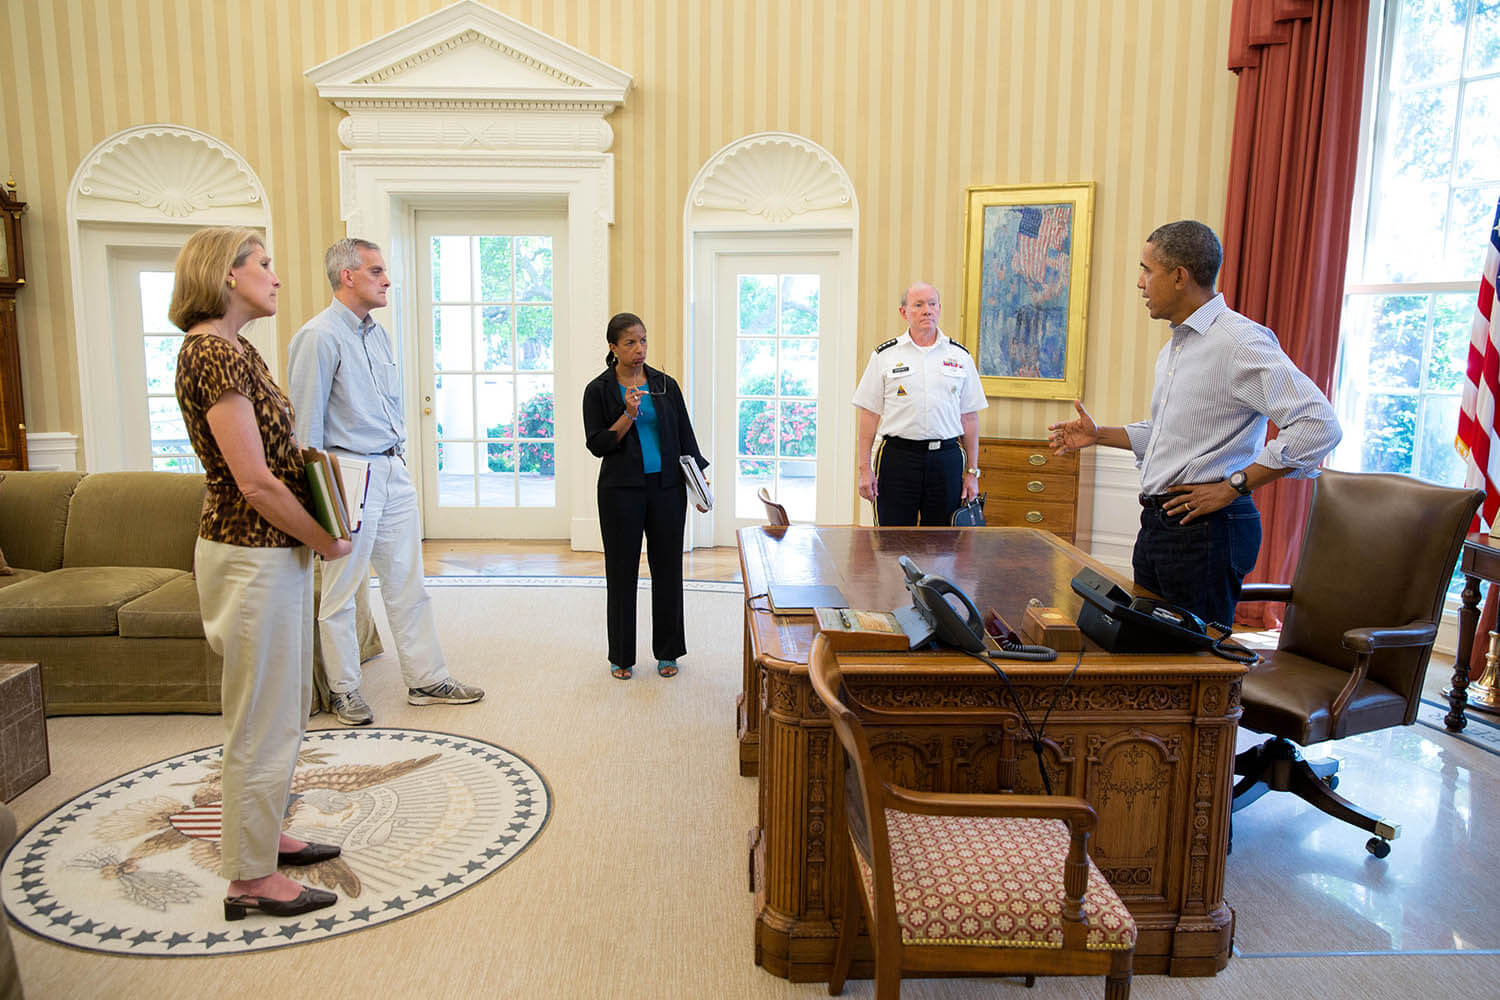 President Barack Obama discusses the situation in Syria with senior advisors in the Oval Office with Karen Donfried on the left. Source: Obama White House / Flickr